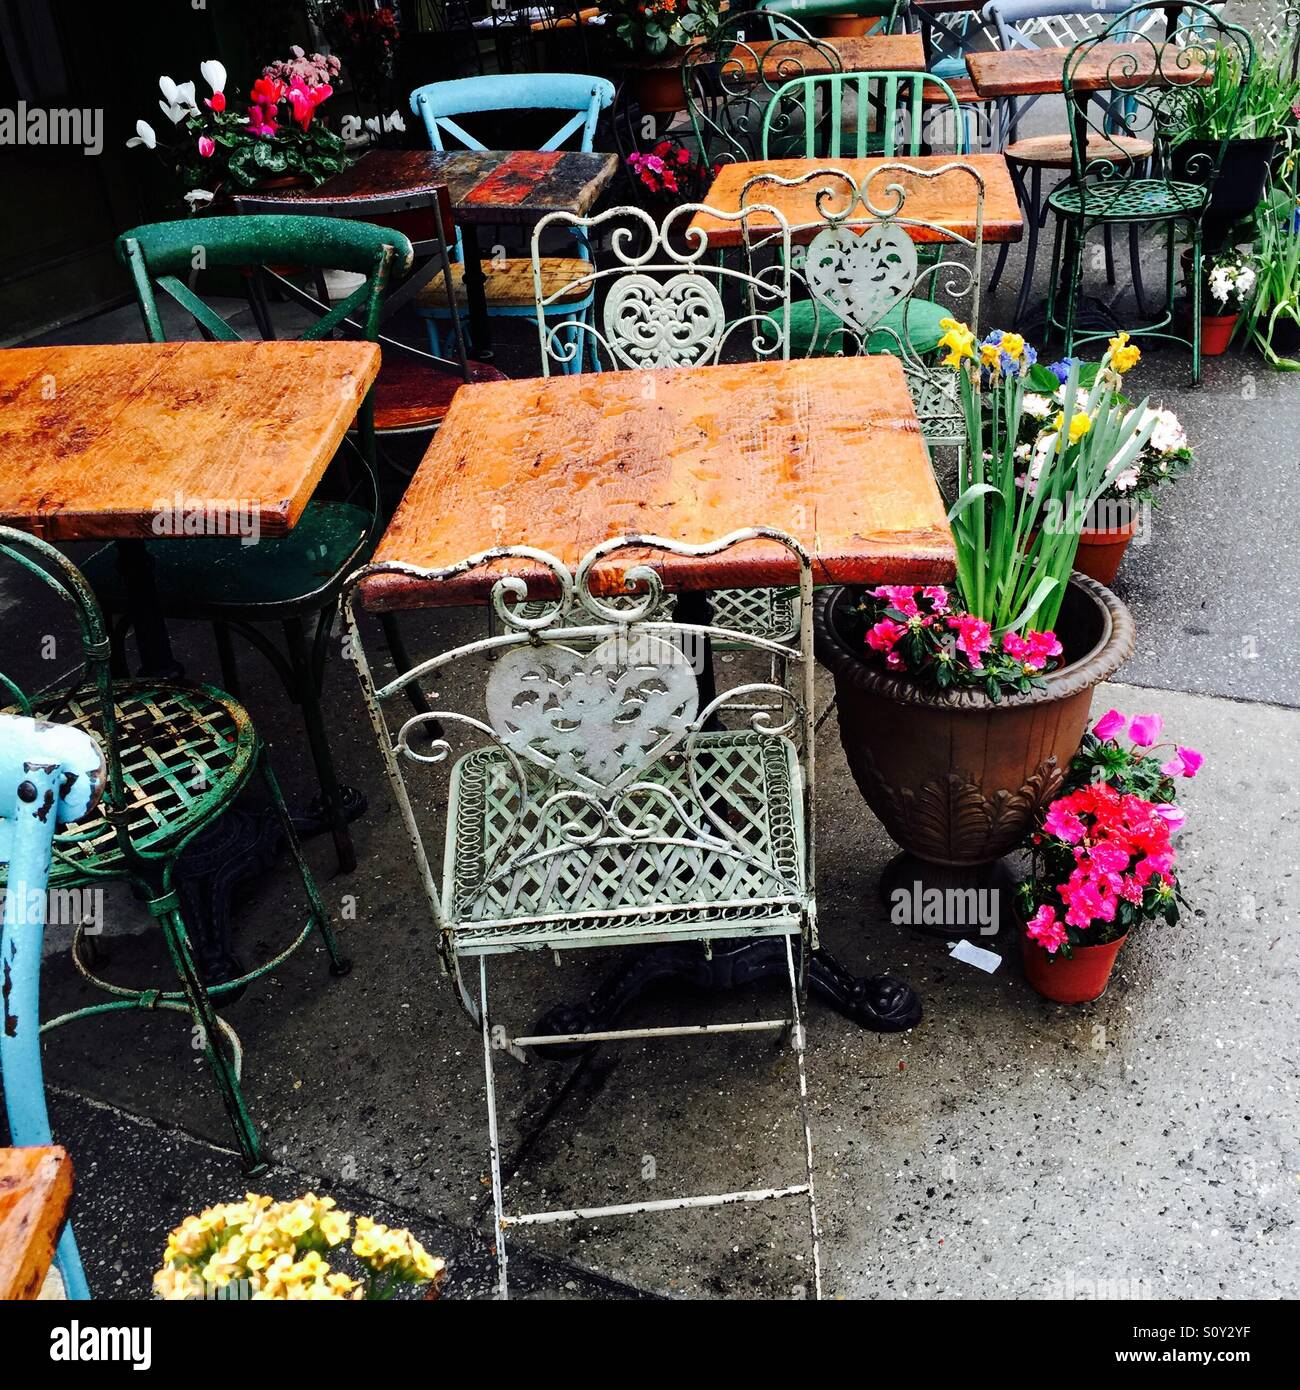 Empty tables and chairs at the sidewalk cafe Olio e Piu in Greenwich Village, New York City Stock Photo